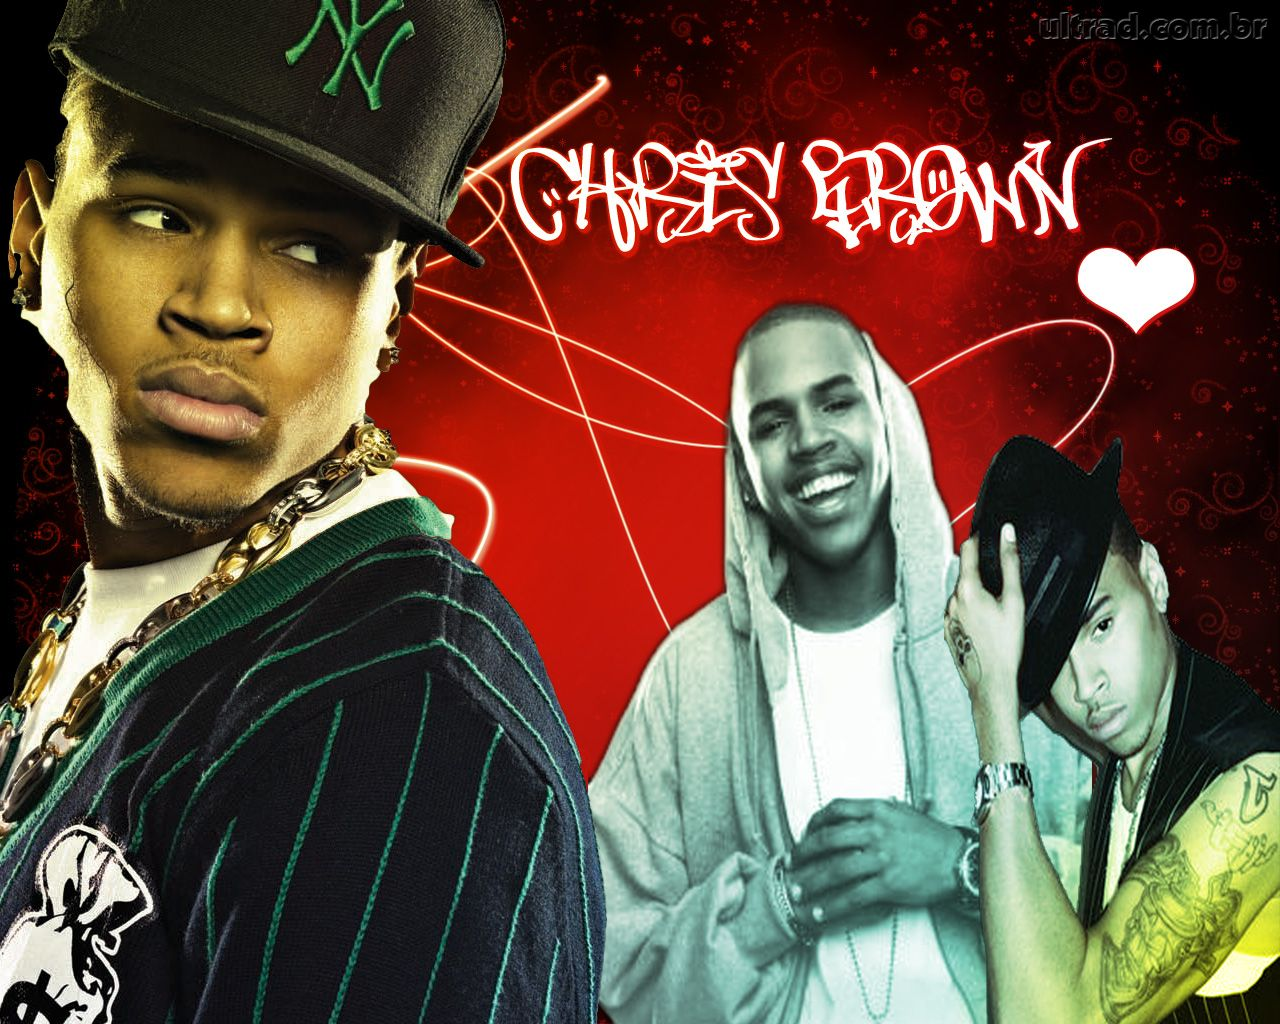 http://3.bp.blogspot.com/-Yx_a2eu9hP8/Tm1IHfu6IcI/AAAAAAAAAJ0/u36a-e73c1g/s1600/CHRIS+BROWN.jpg